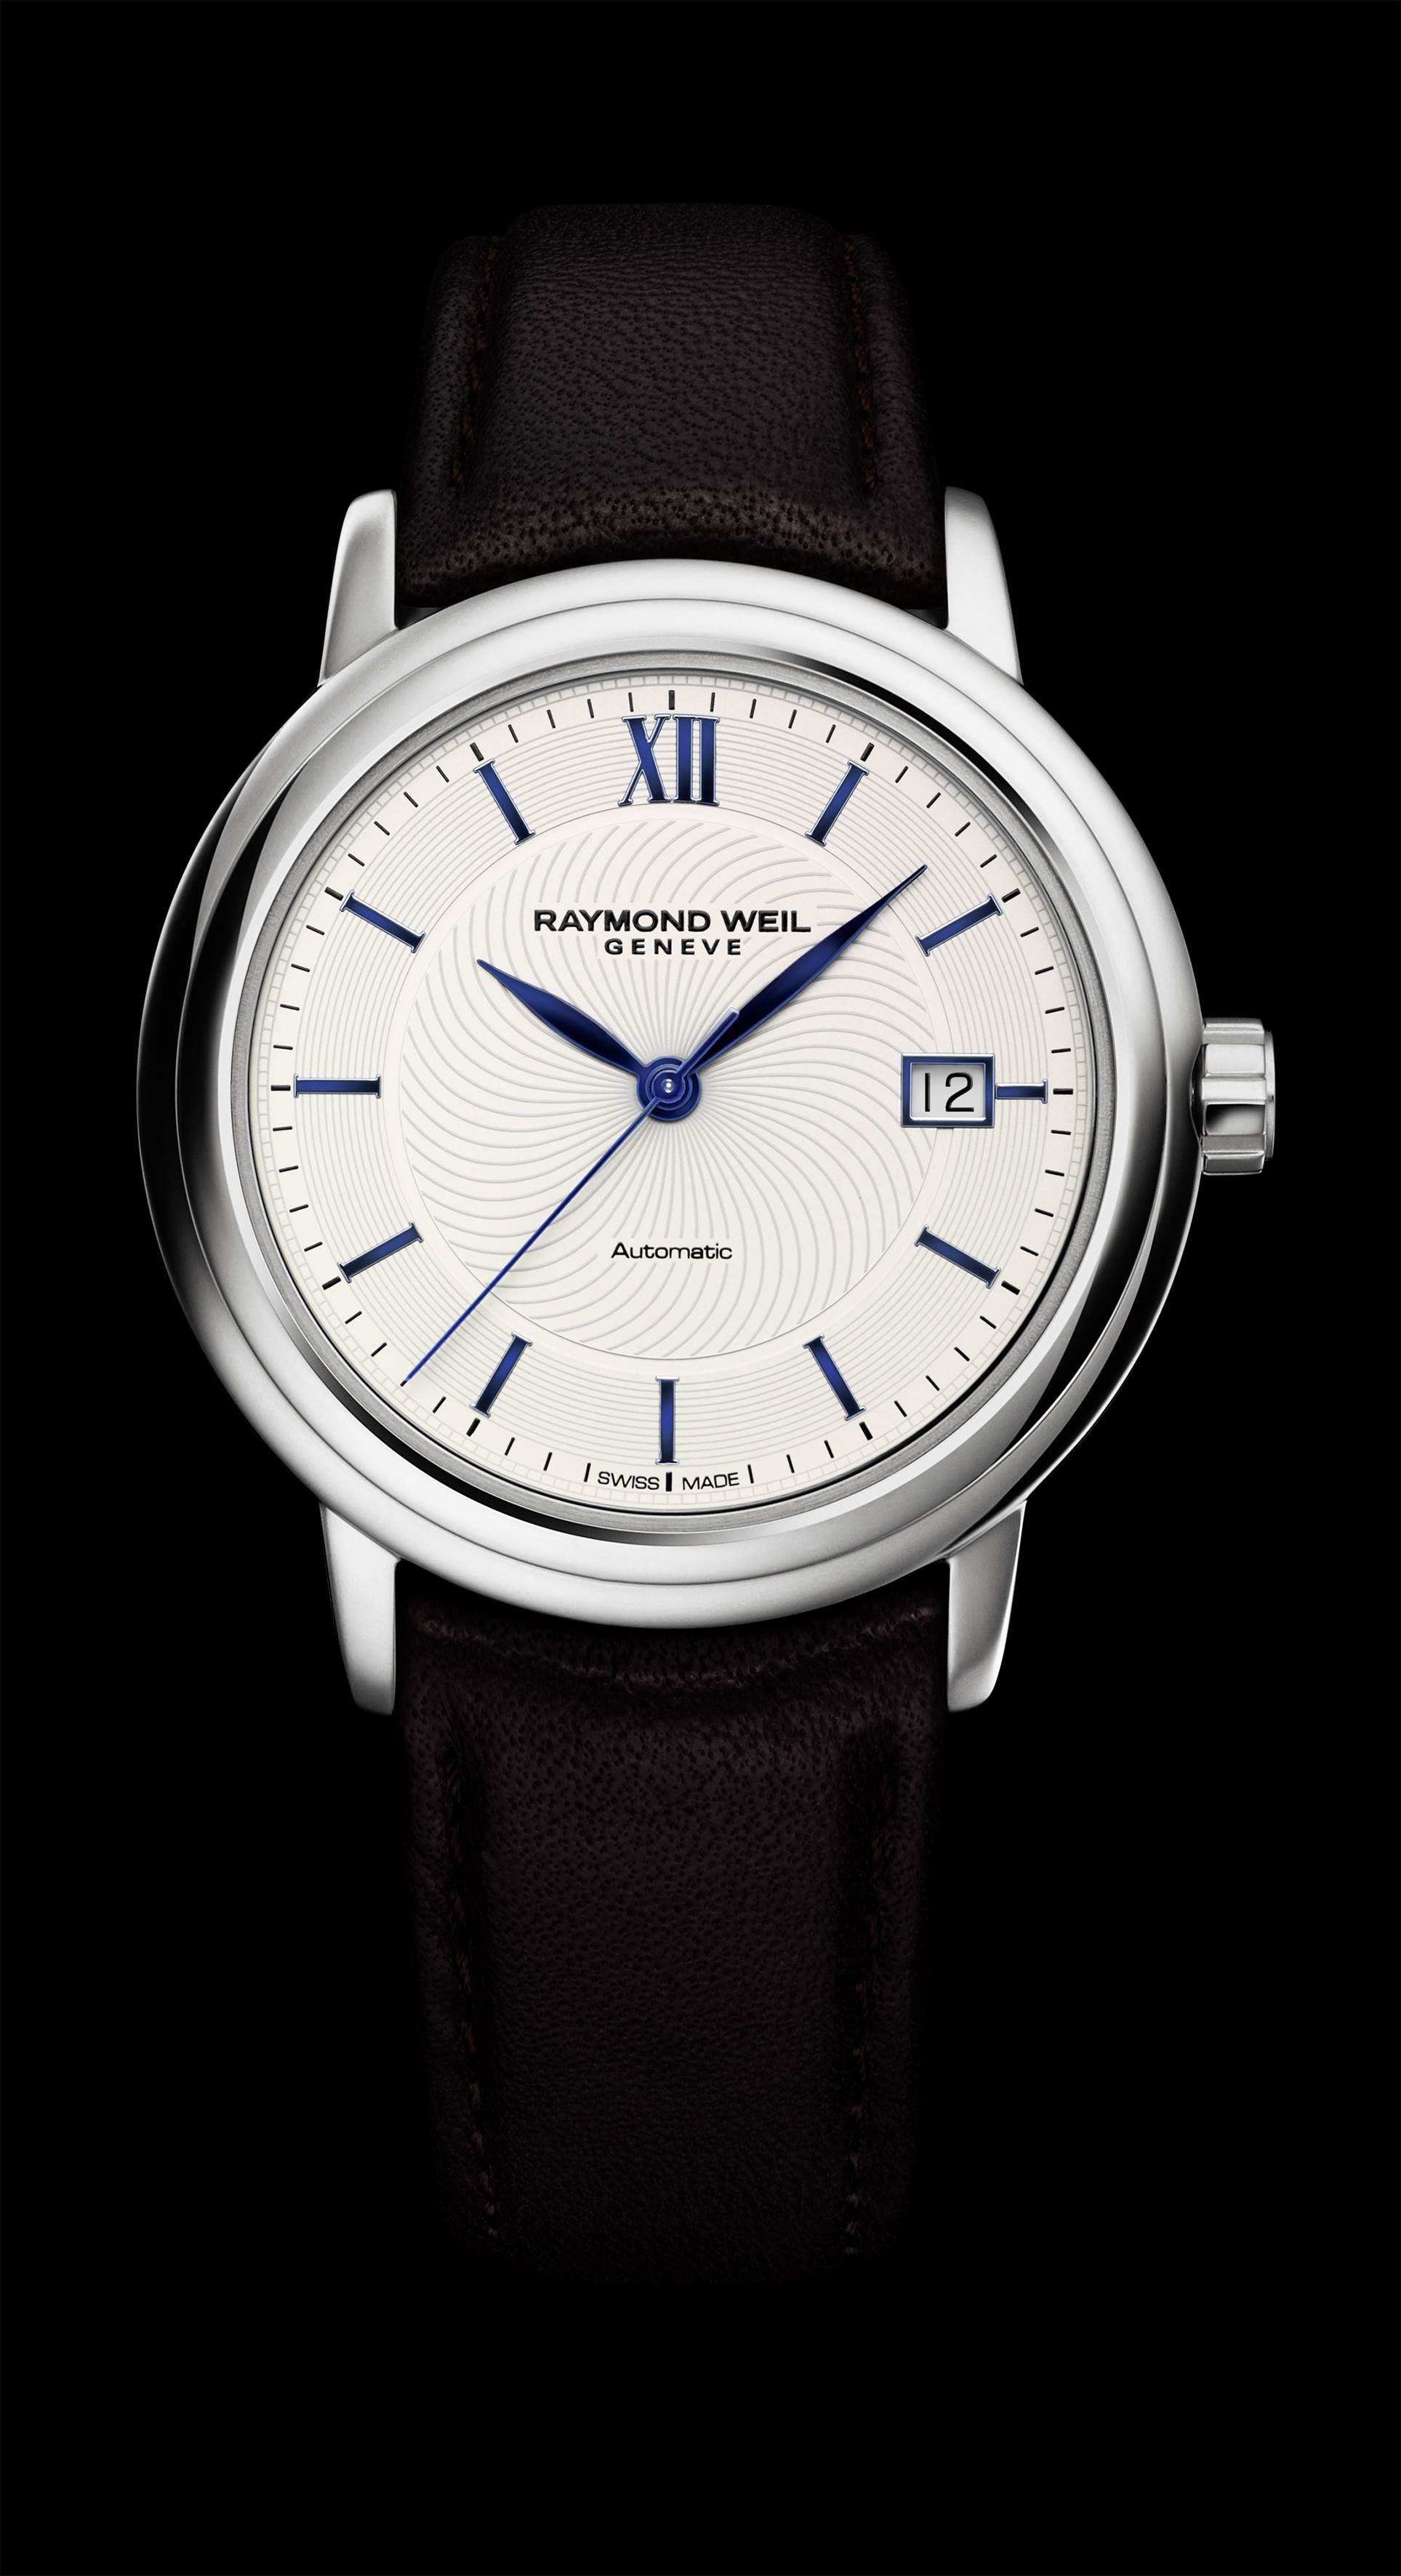 RAYMOND WEIL INTRODUCES THE MAESTRO FRANK SINATRA LIMITED